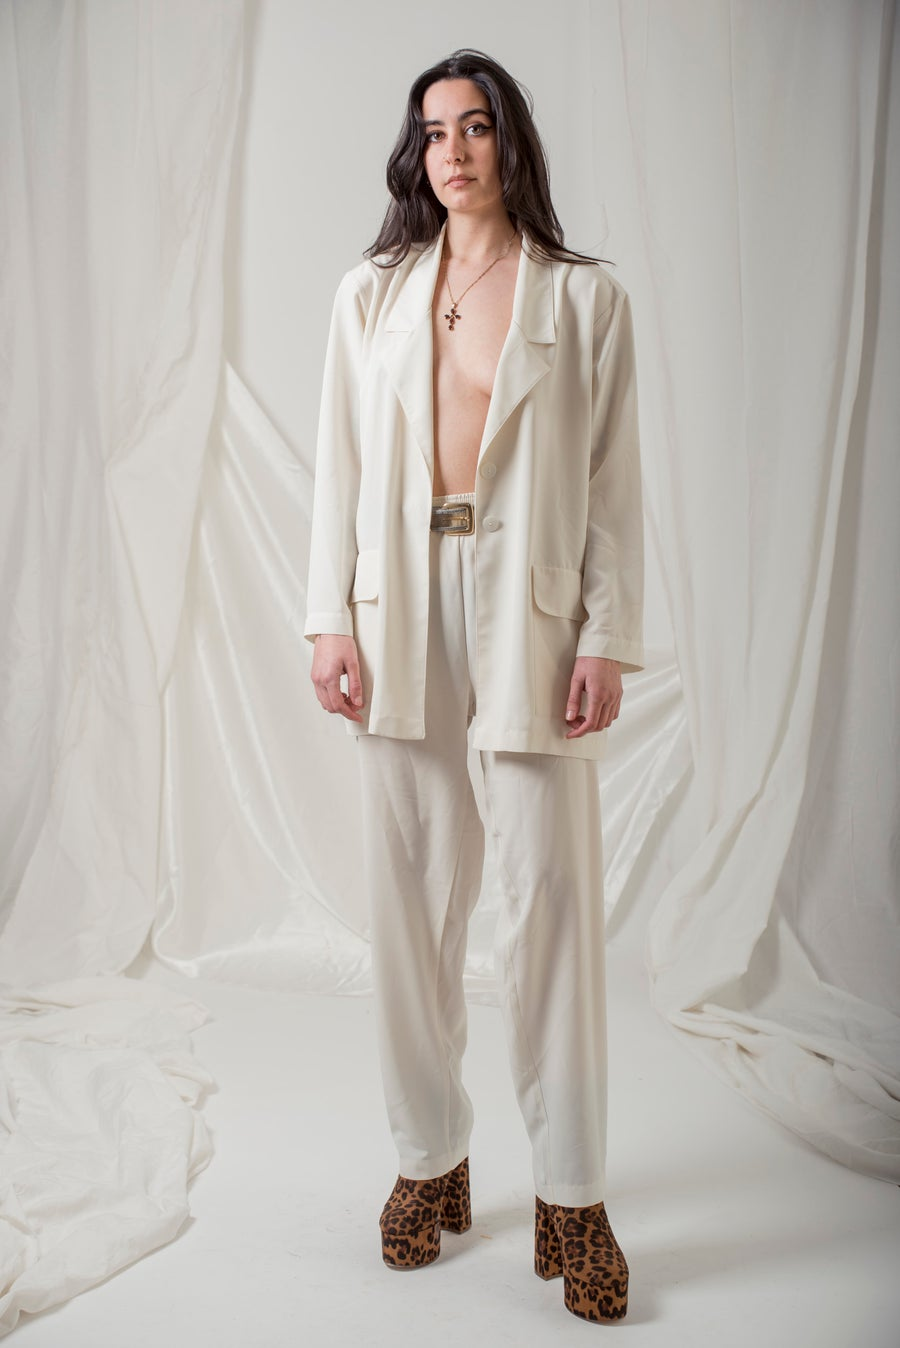 Image of White 'Ester Ken' Parisian Couture Set